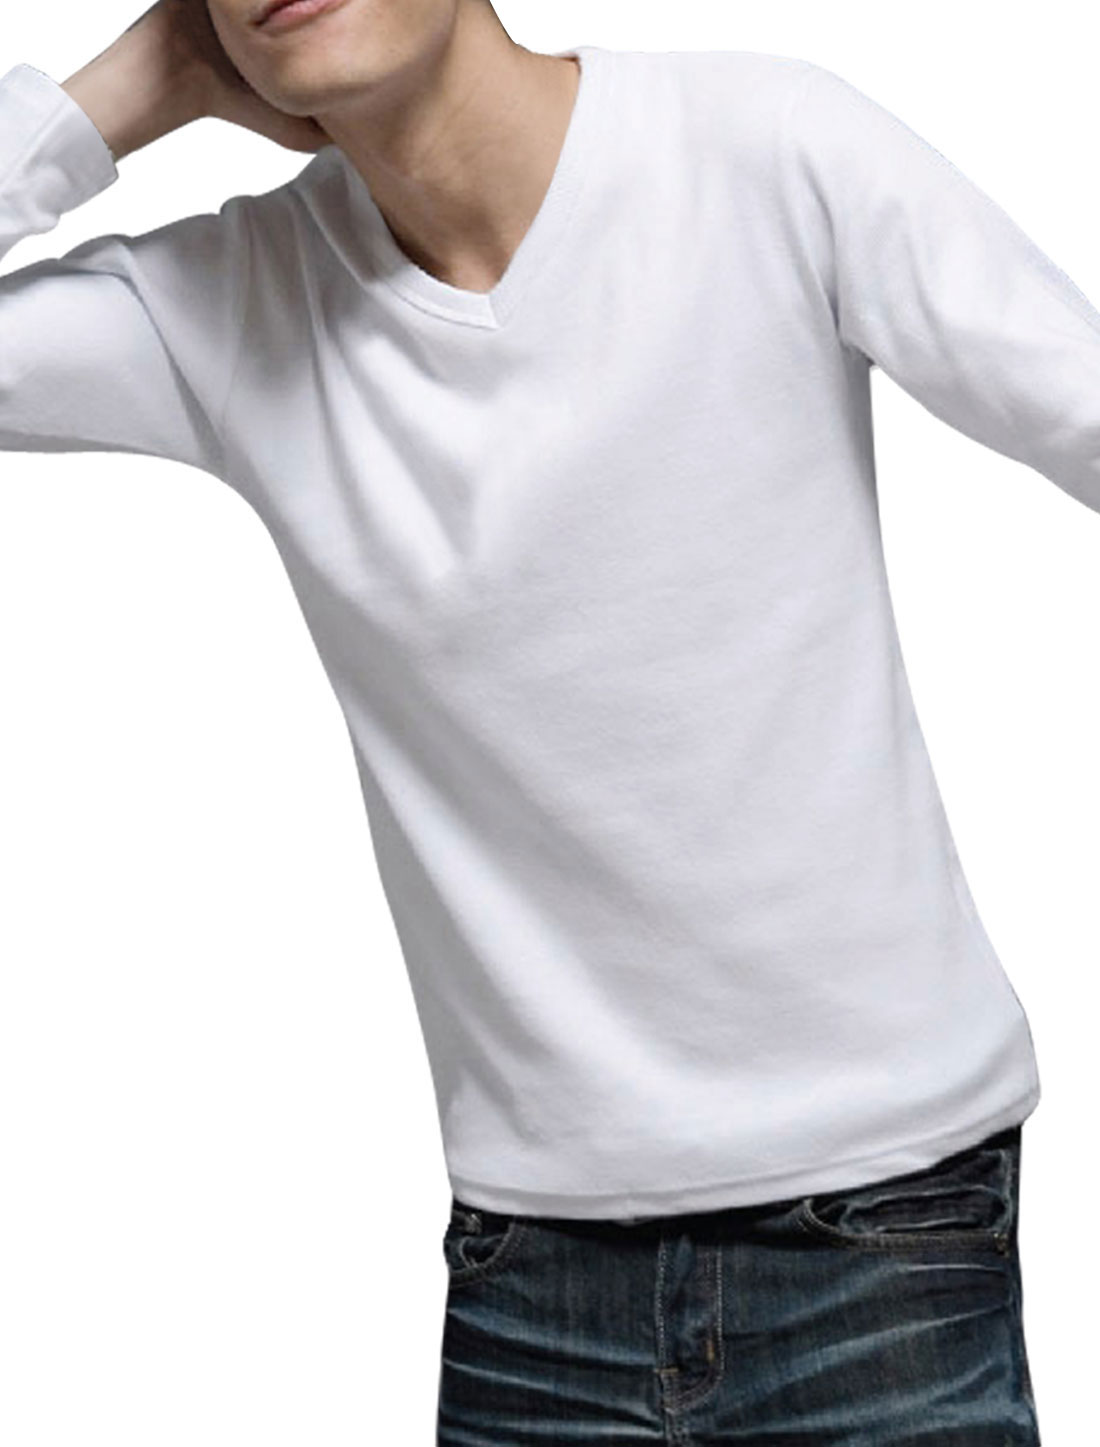 Men Solid White V Neck Long Sleeve Fall Tee Shirt S